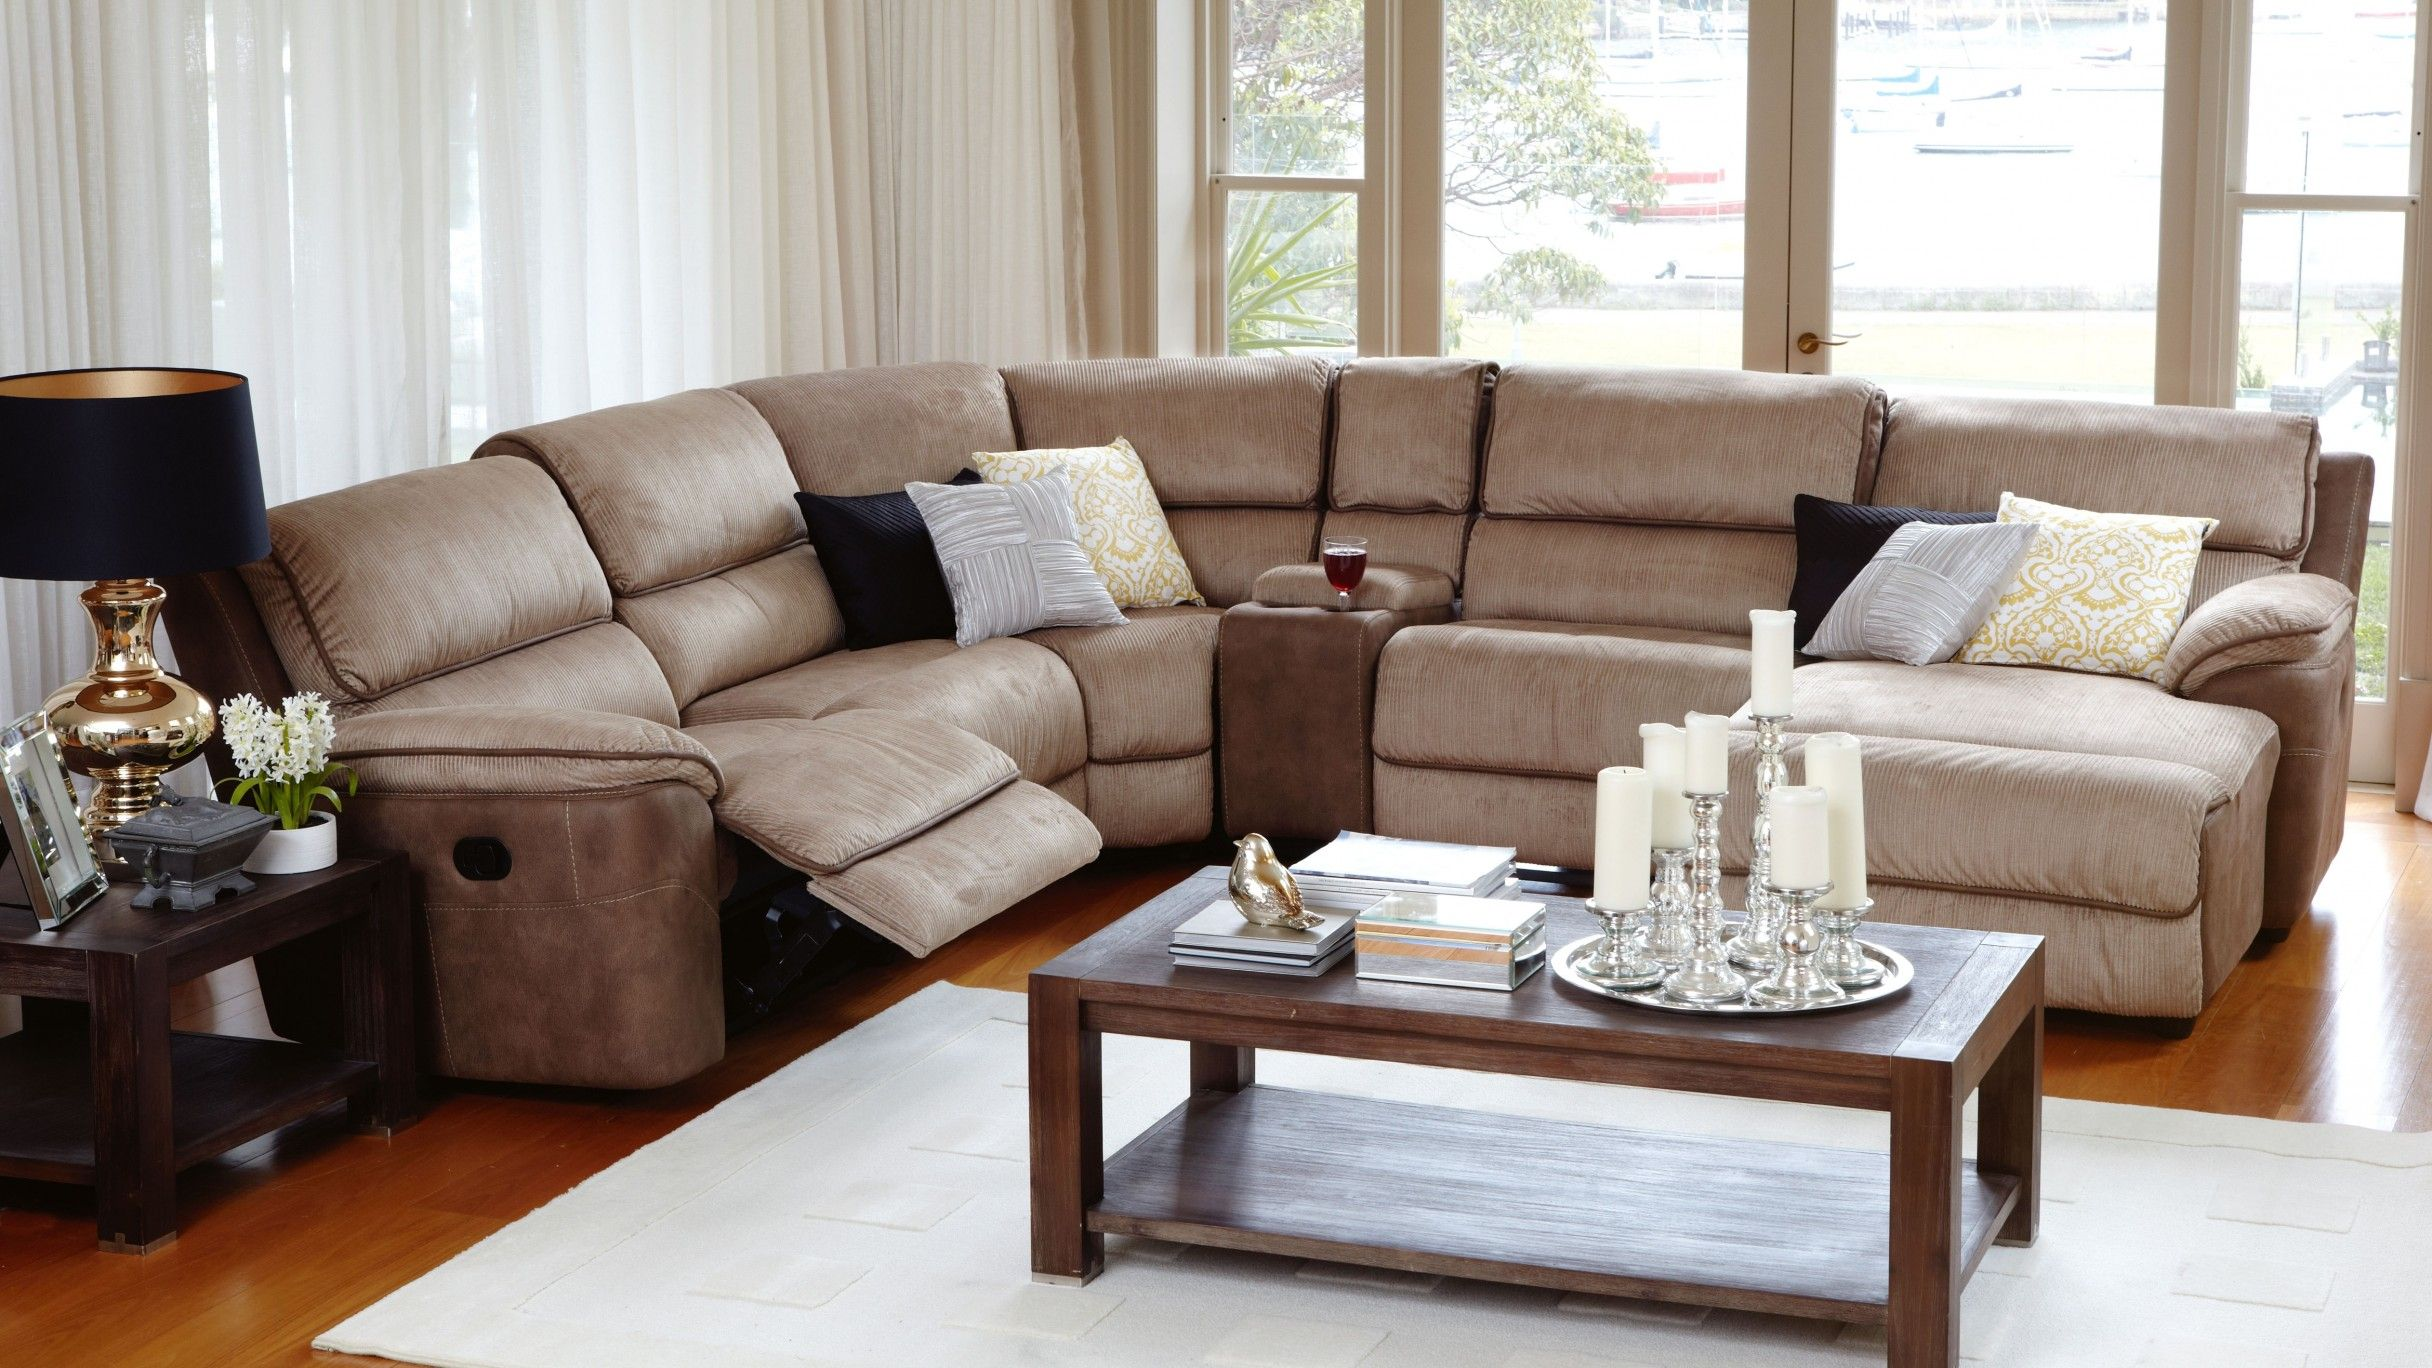 Bourbon modular lounge suite with recliner and chaise Loungers for living room